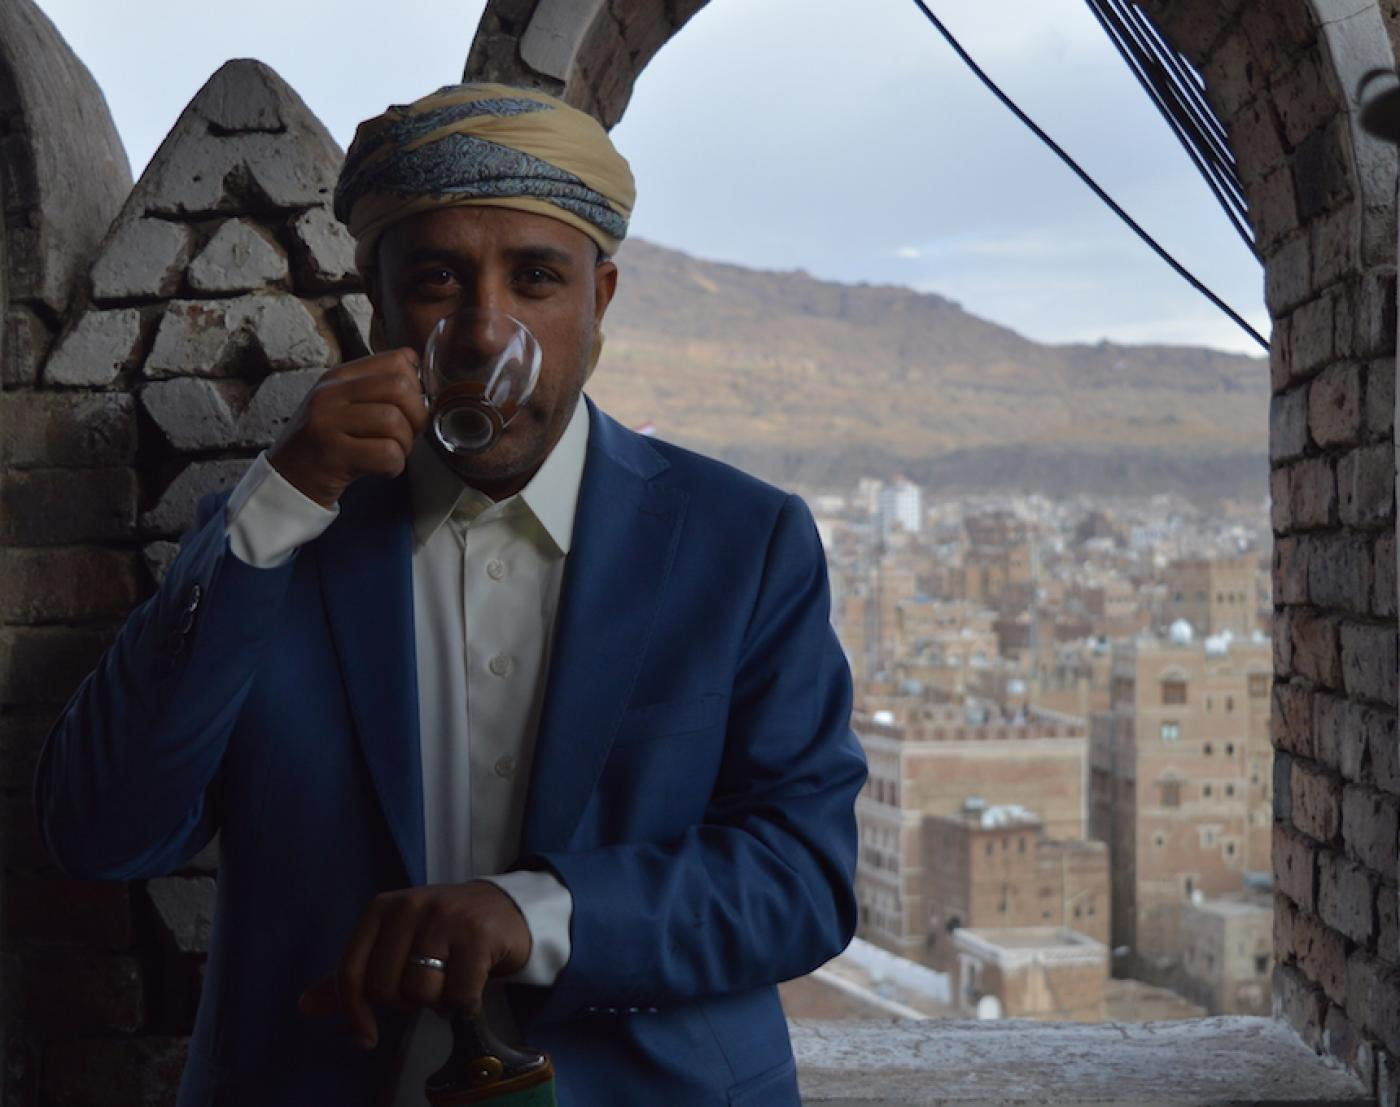 fe45b73001246 Businessman Hussein Ahmed intends to provide aficionados with Yemen s best  cup of coffee